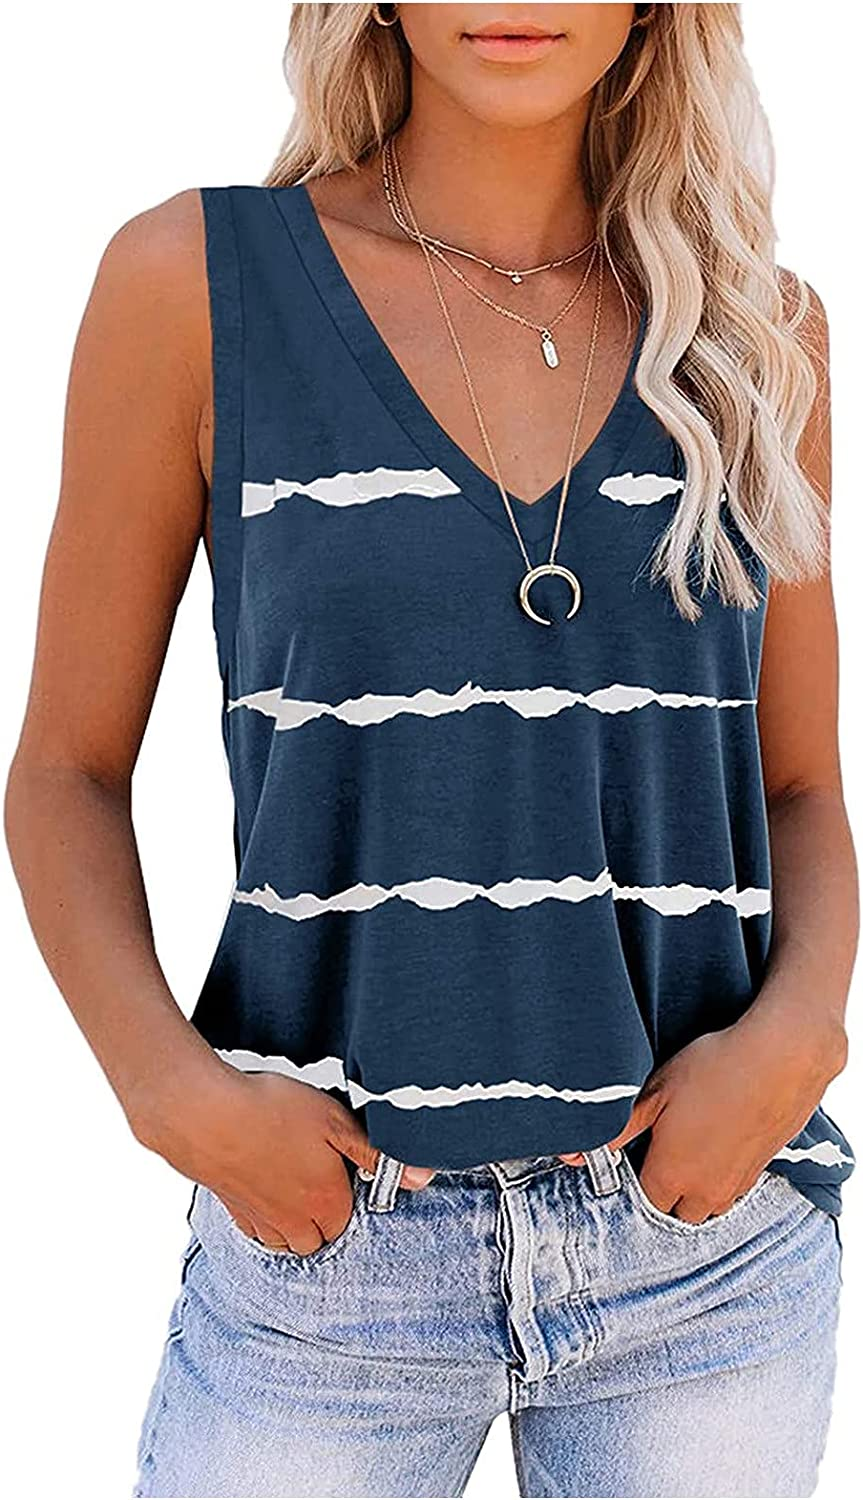 Tops for Women Casual Summer Under 10,Women Tank Tops Womens Cute Printed Vest Tshirt Sleeveless Workout Blouse Casual Summer Tank Top Tunic Tee Blue